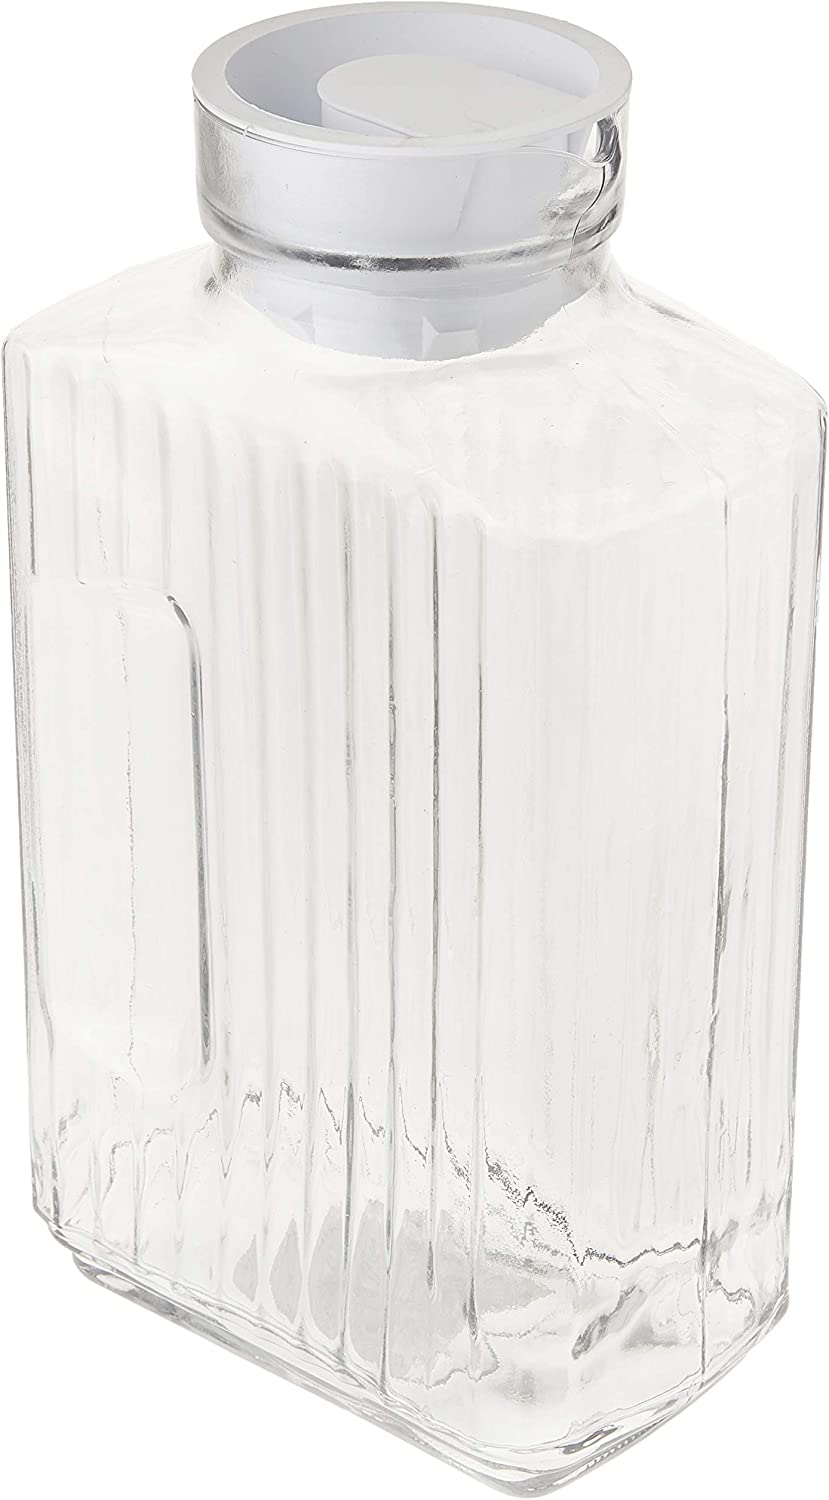 Anchor Hocking Glass Bistro Pitcher with White Stopper, 64-Ounce, Clear